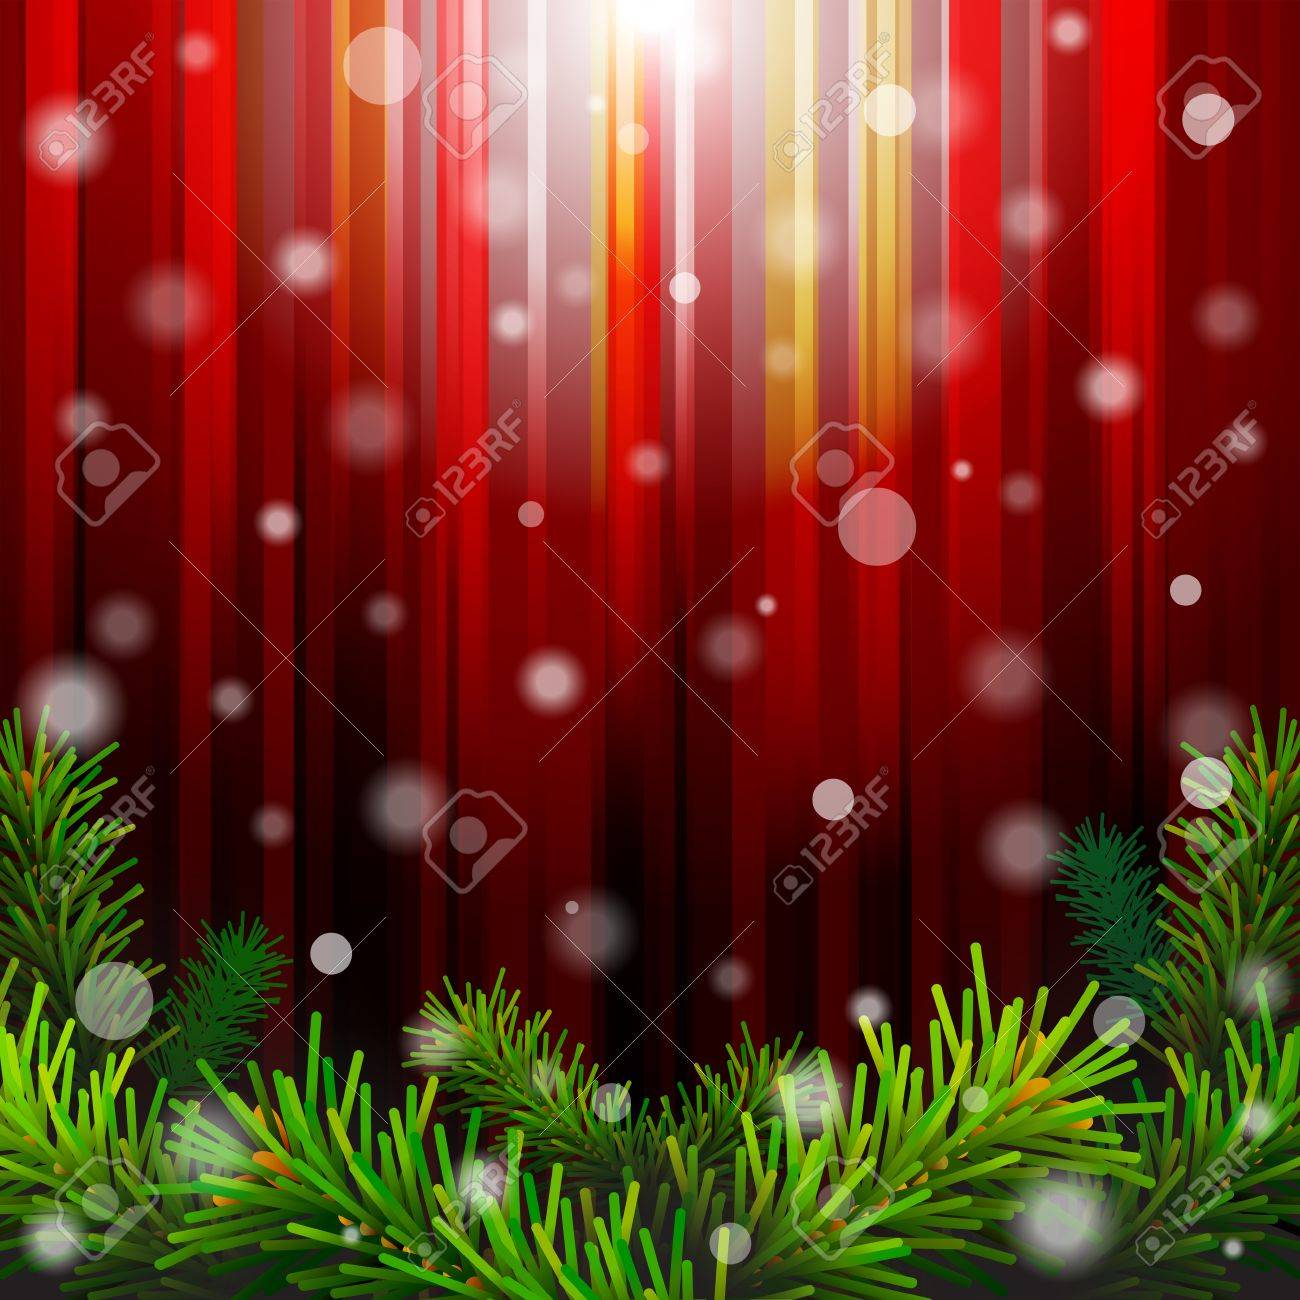 christmas red background with pine branches against lighting new year backdrop with falling snow qualitative vector